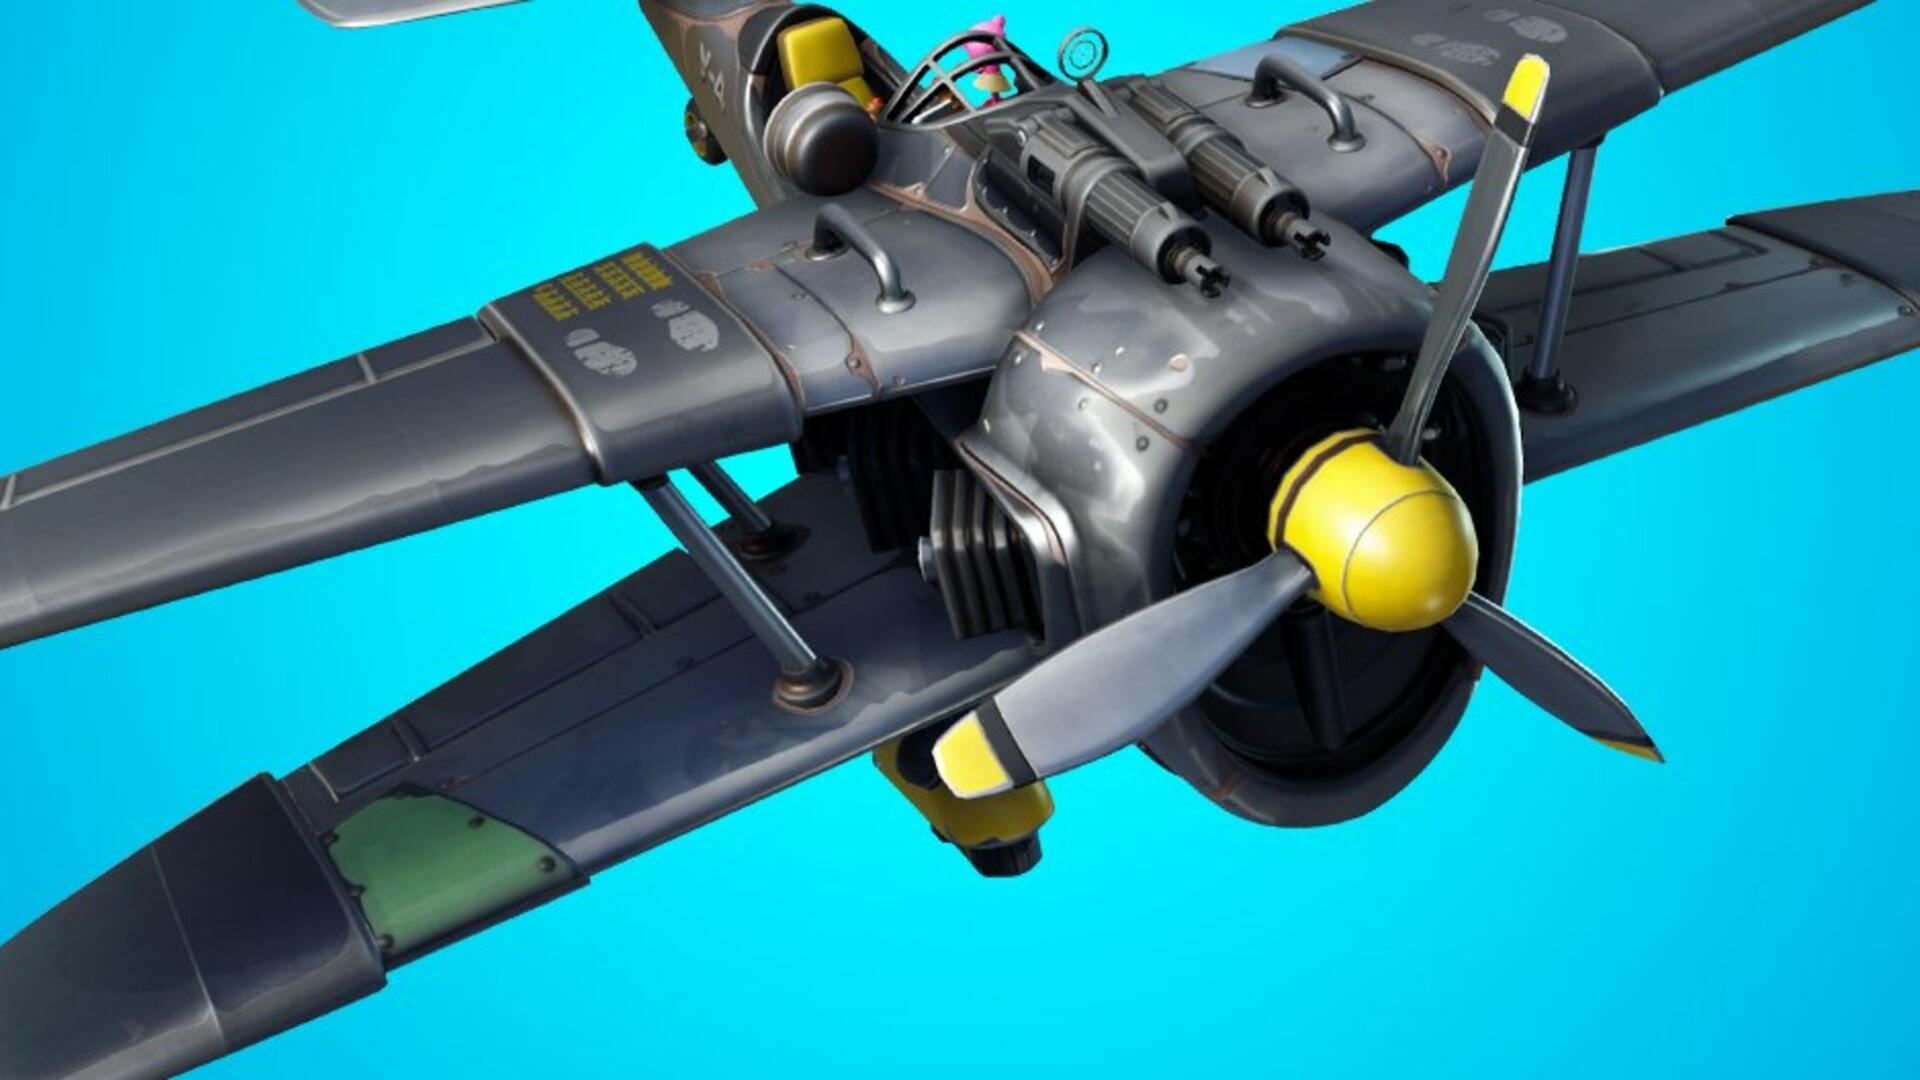 Fortnite v8.40 Patch Notes Now Available, Reintroduces the Stormwing Plane in a New LTM